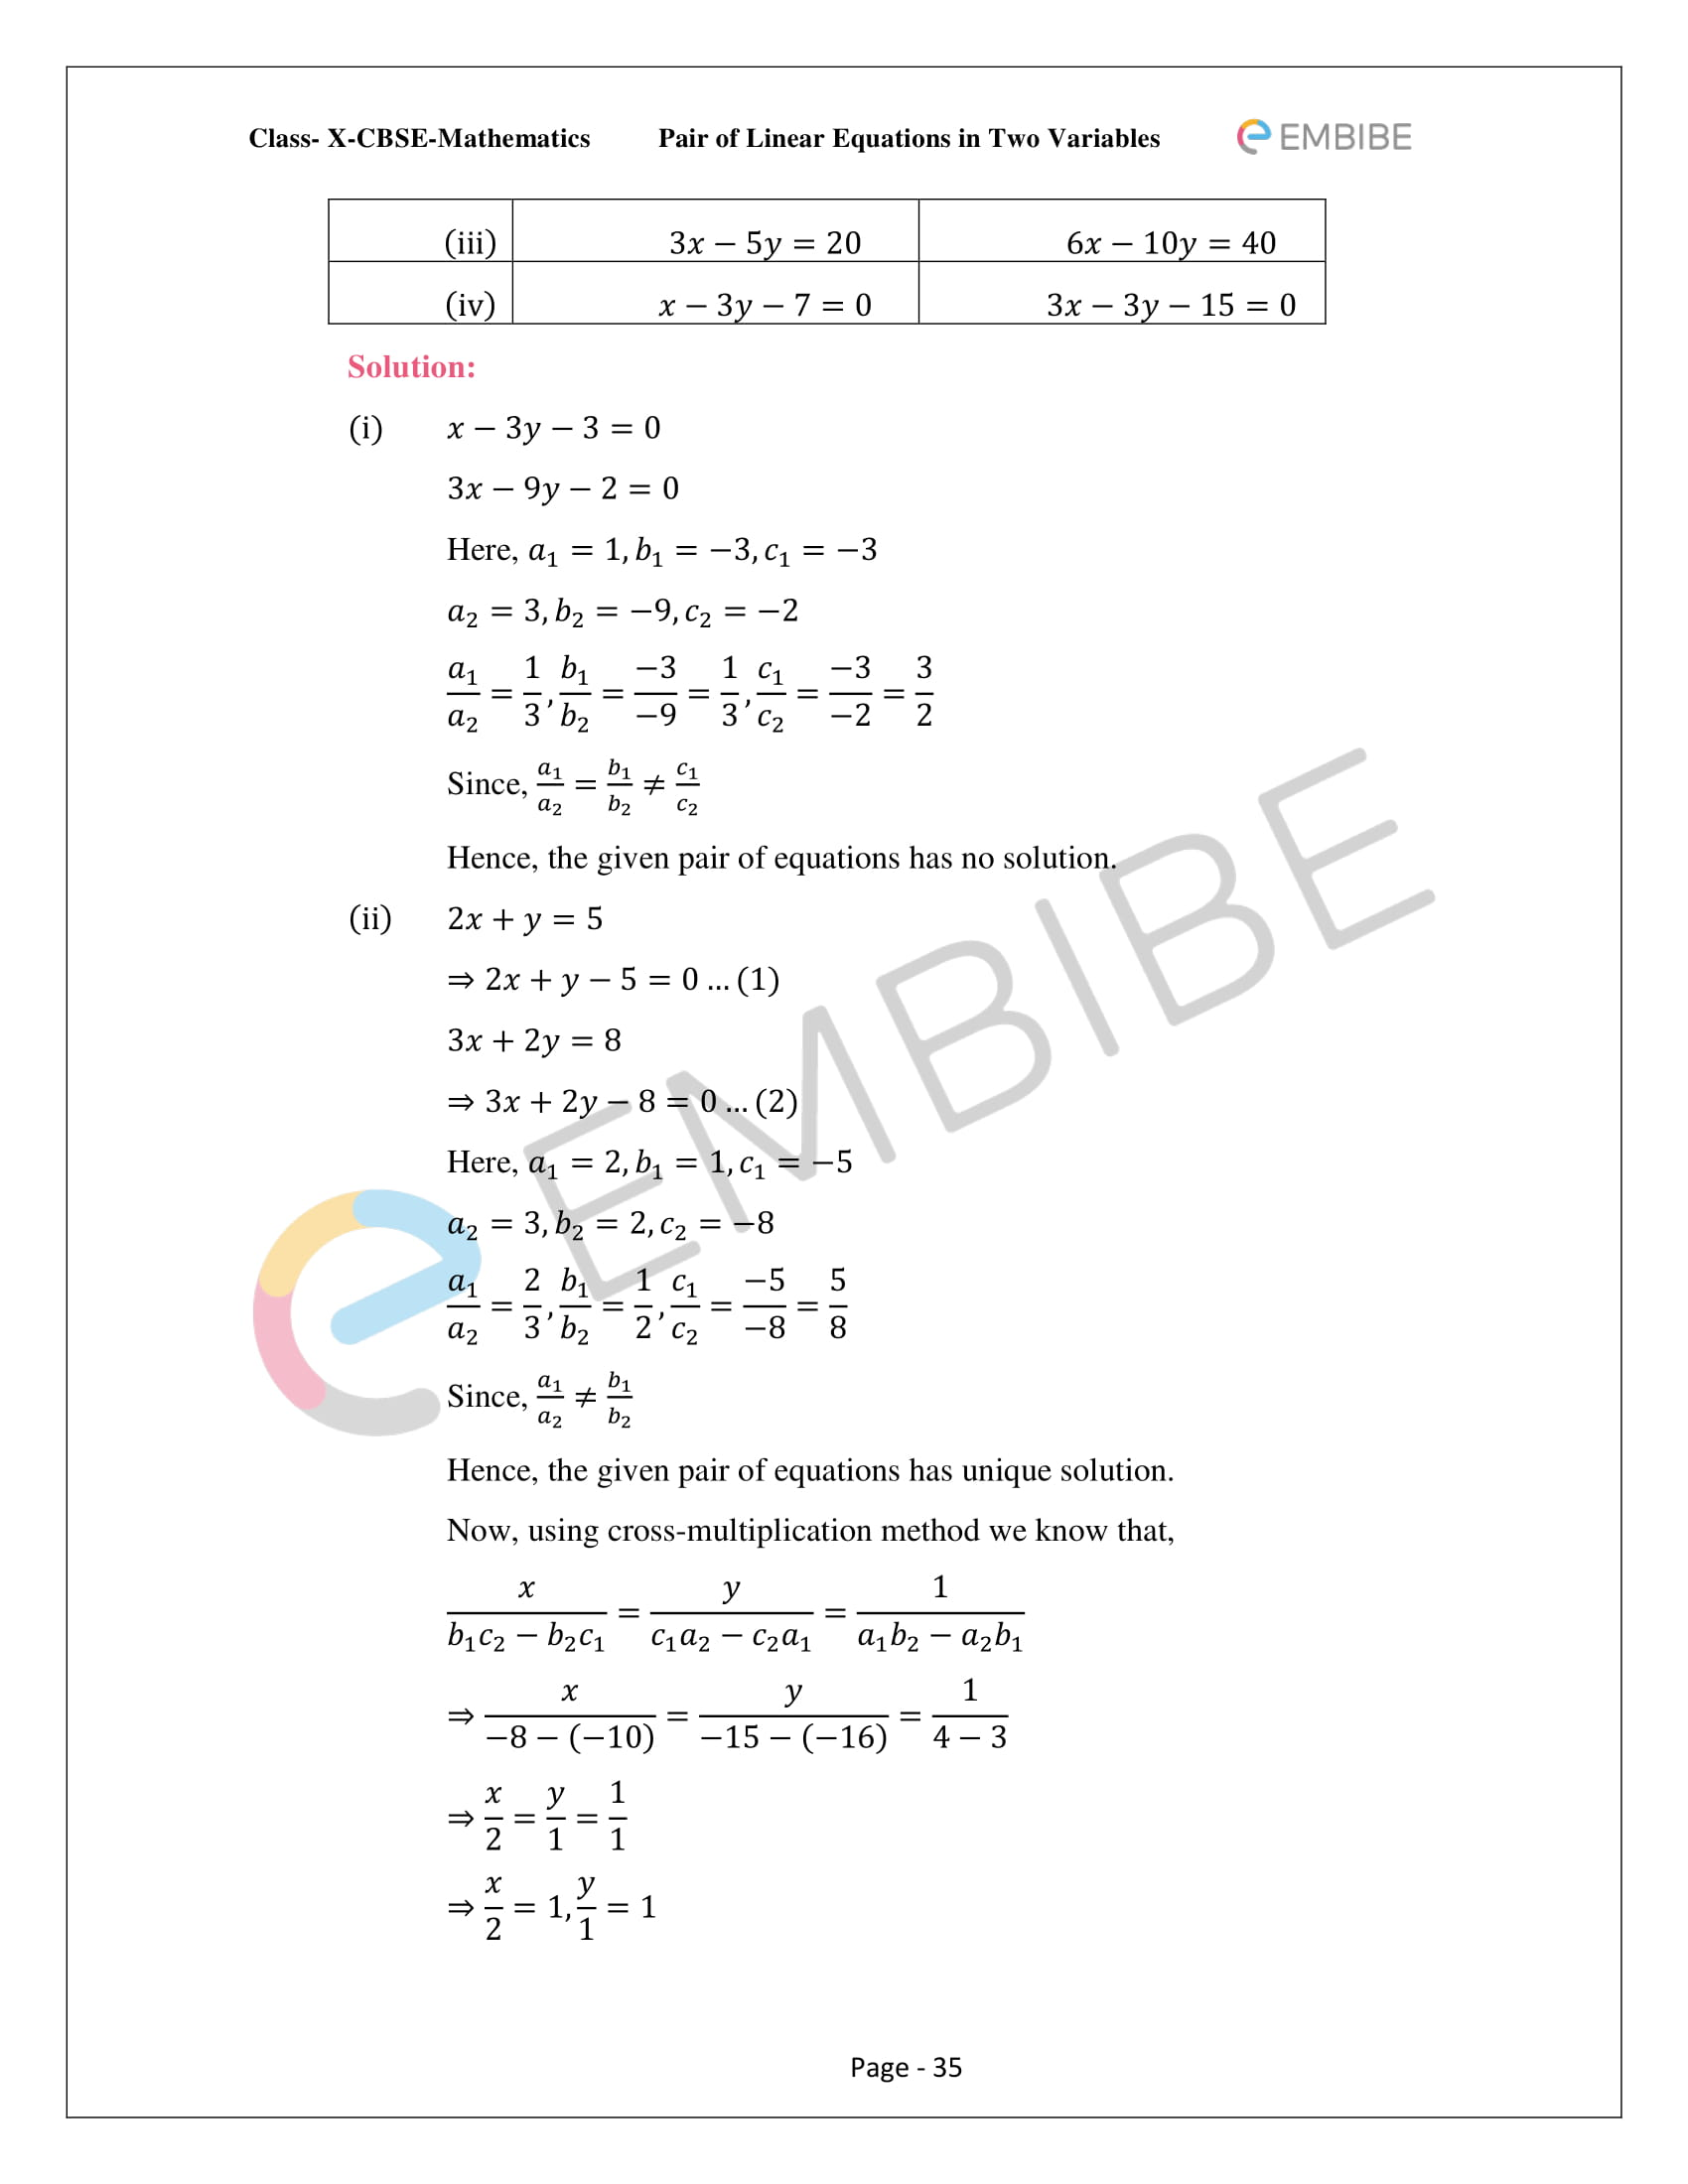 CBSE NCERT Solutions For Class 10 Maths Chapter 3 - Pair of Linear Equations In Two Variables - 35